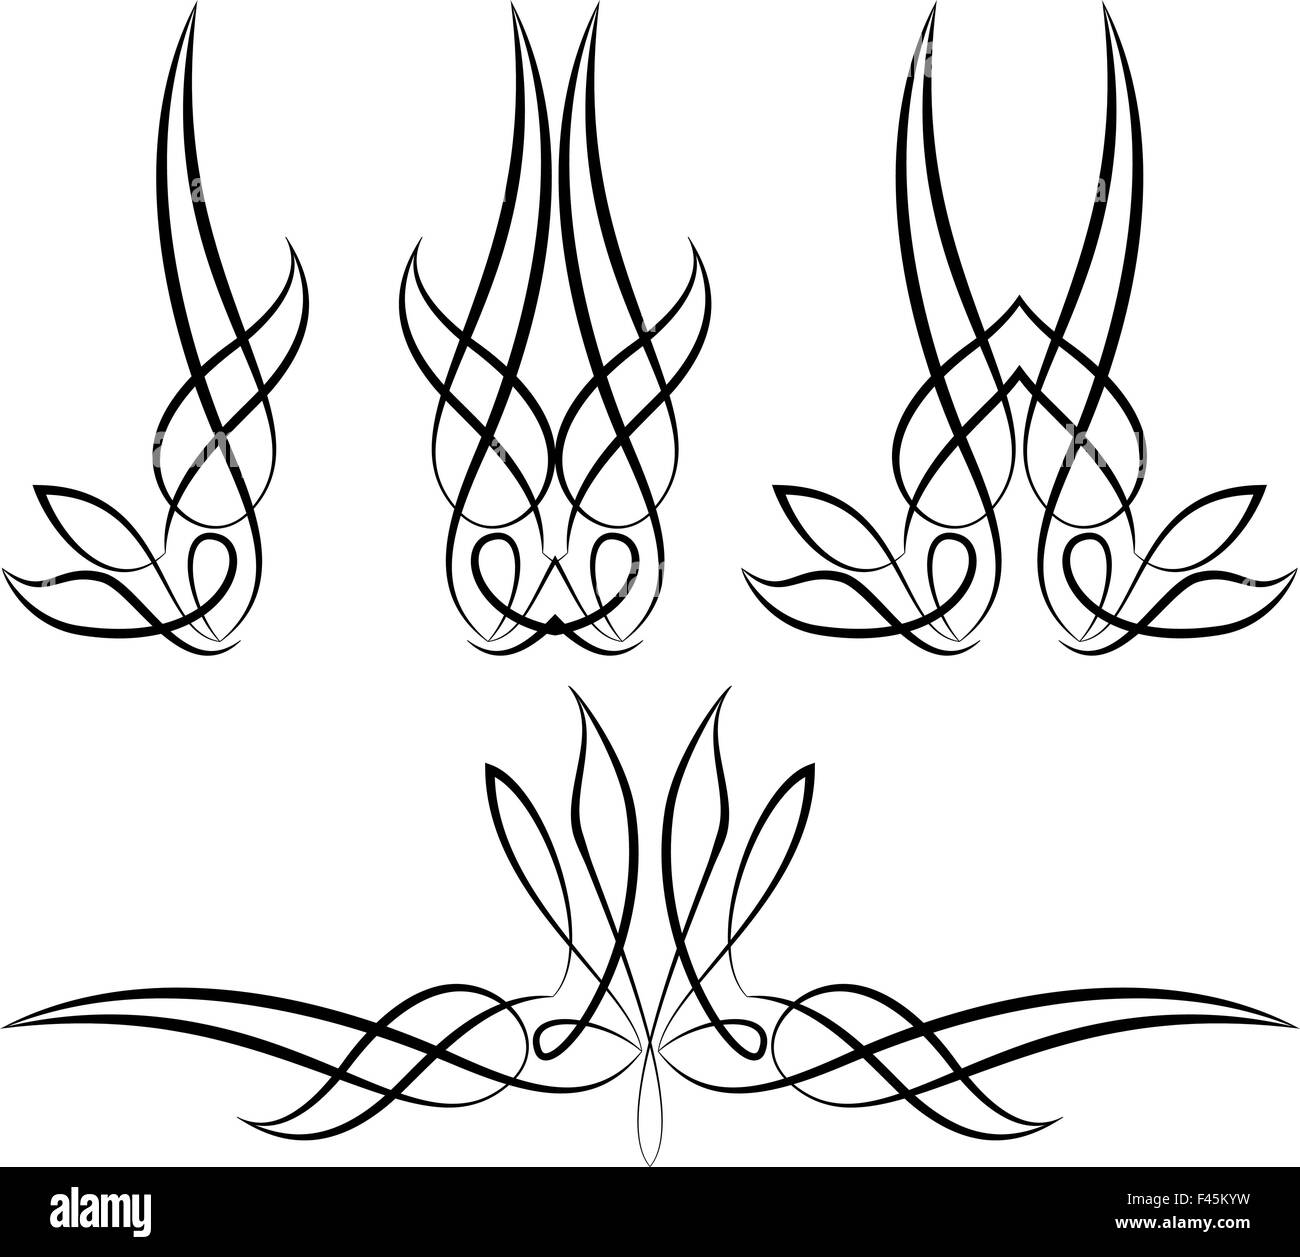 pinstripe graphics vinyl ready vector art stock vector art rh alamy com pinstripe vector pattern pinstripe vector graphics